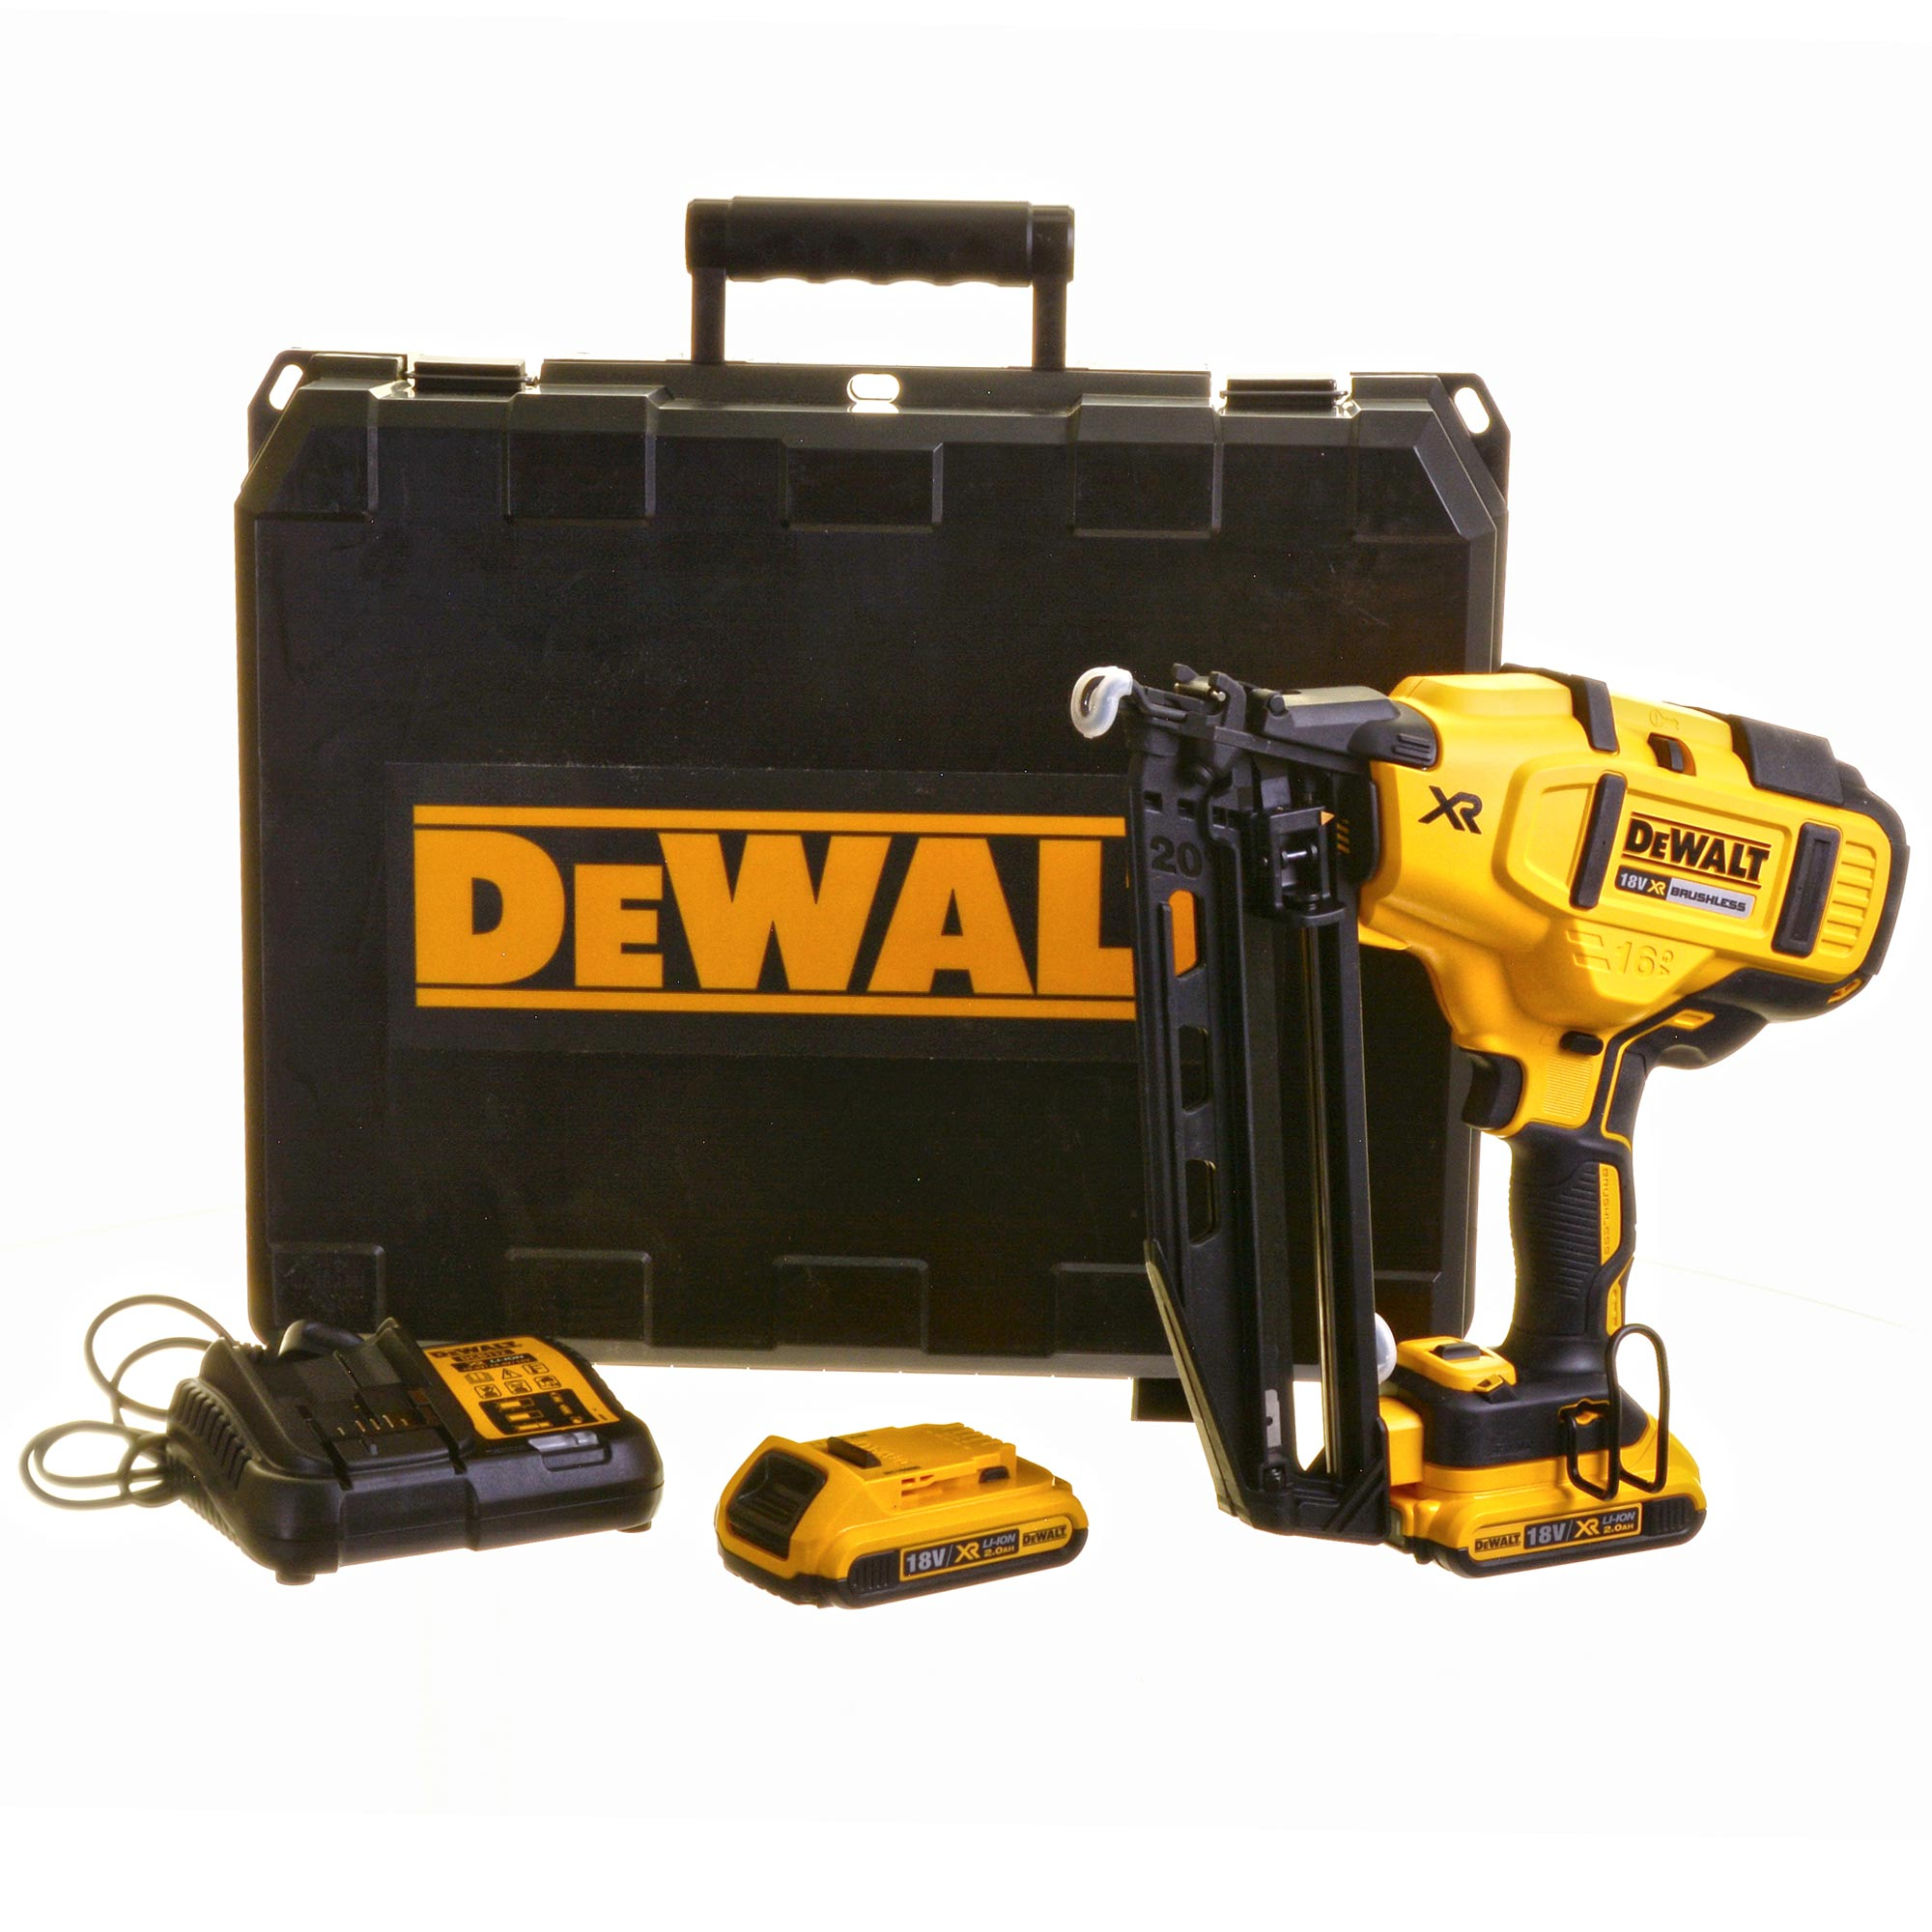 dewalt dcn660d2 dewalt 18v li ion brushless 2nd fix. Black Bedroom Furniture Sets. Home Design Ideas